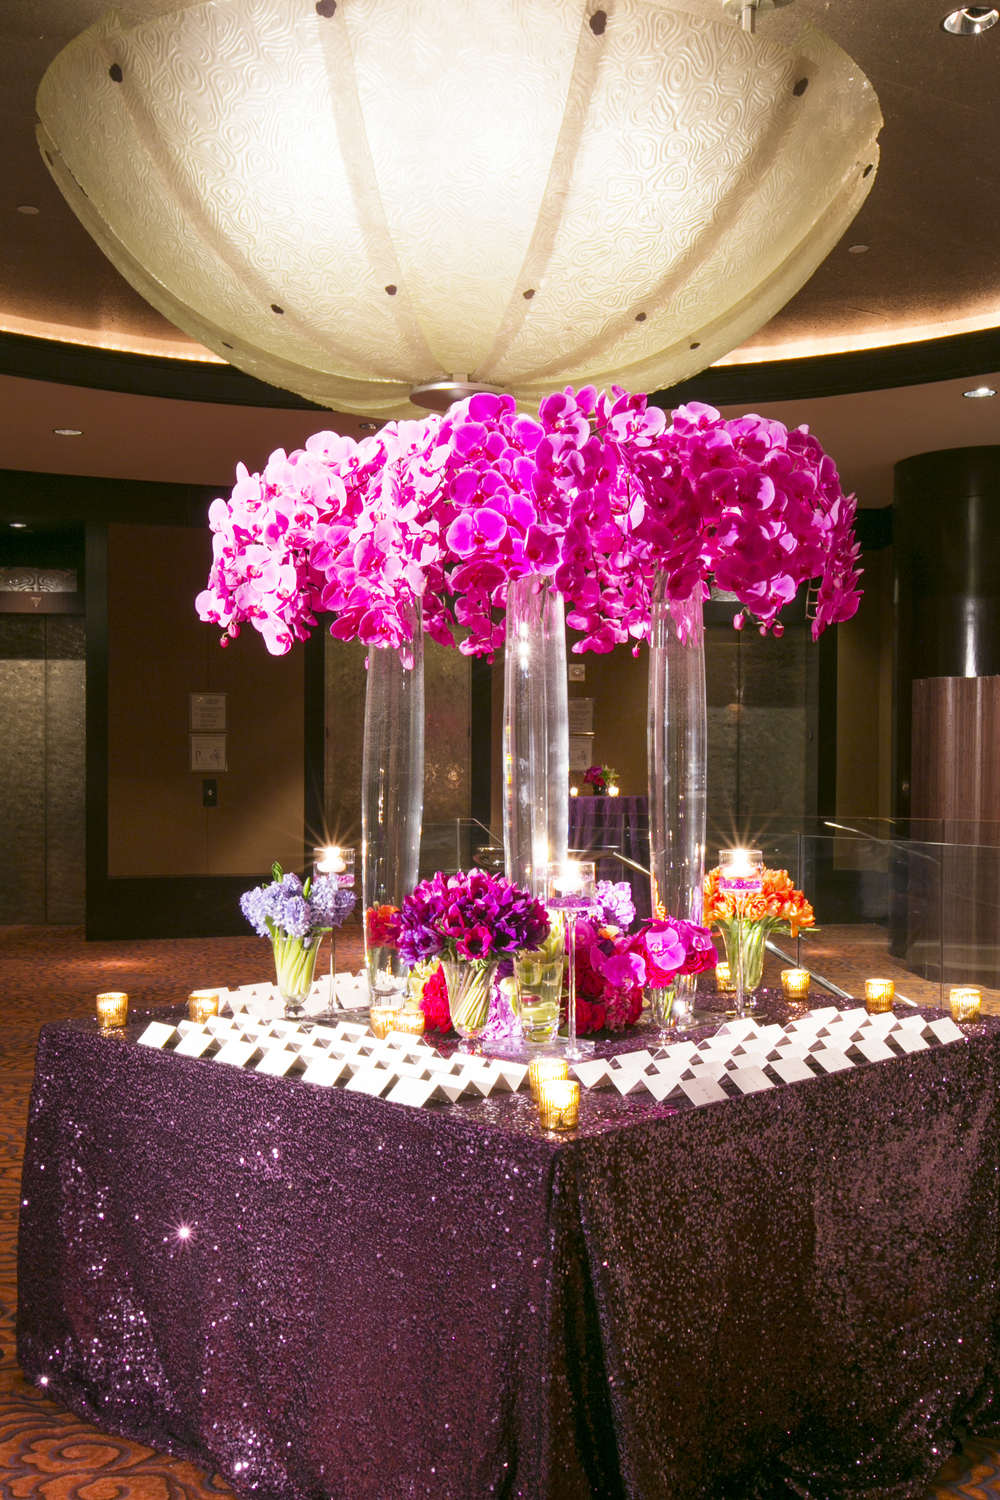 NYC-Wedding-Planner-Andrea-Freeman-Events-Mandarin-Oriental-8.jpg